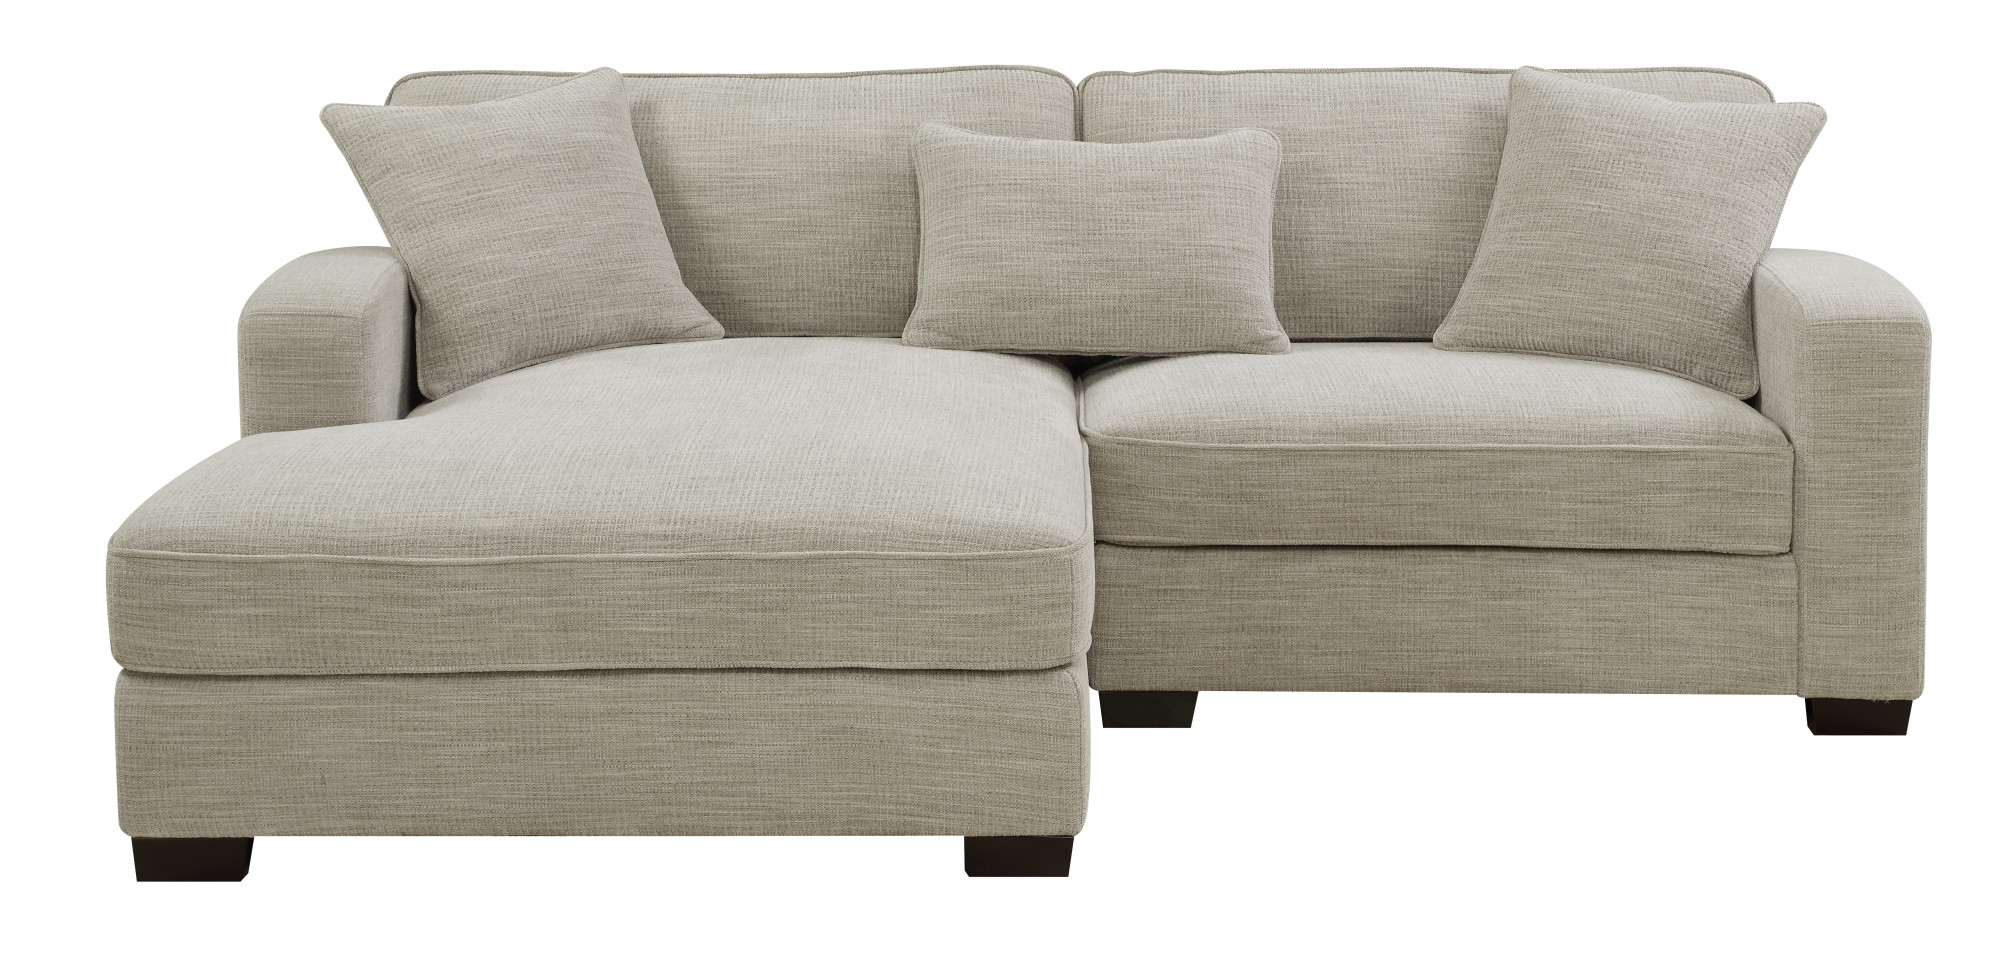 Awesome Emerald Home Repose Silver Chofa Sectional With Pillows Ultra Soft Fabric Track Arms And Block Legs Standard 1 Contemporary L Shaped L Shaped Frankydiablos Diy Chair Ideas Frankydiabloscom